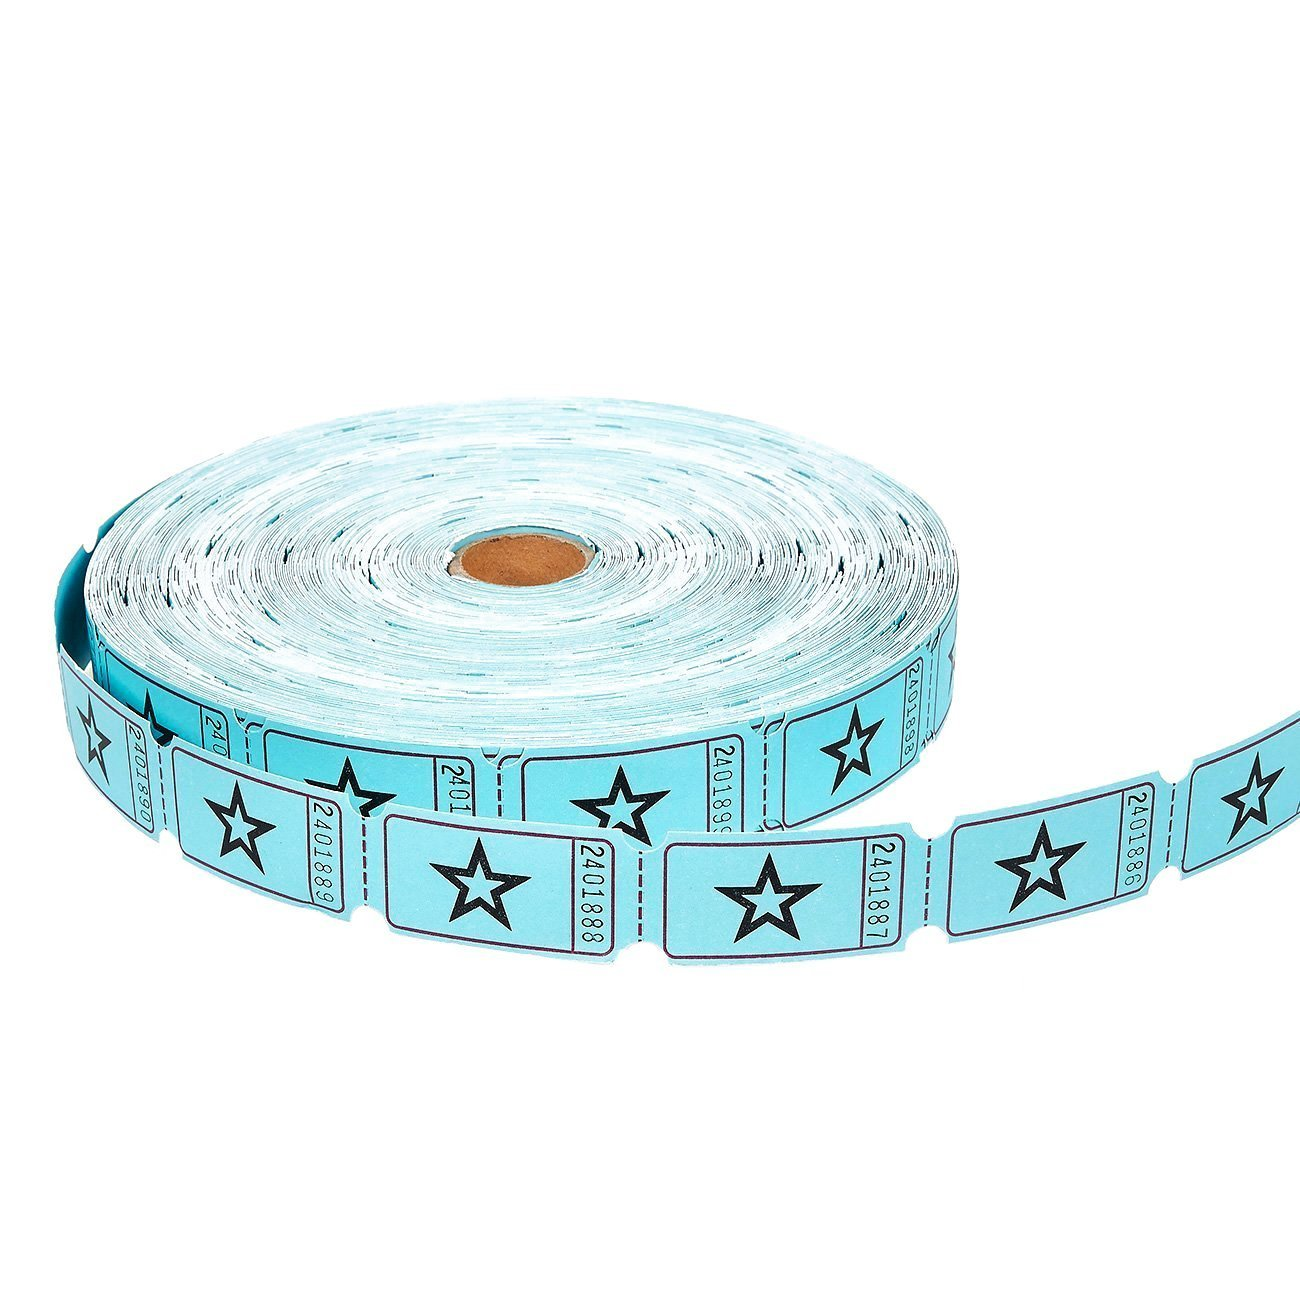 Juvale Raffle Tickets roll/ blu /Rotolo di 2000-count Star ticket coupon